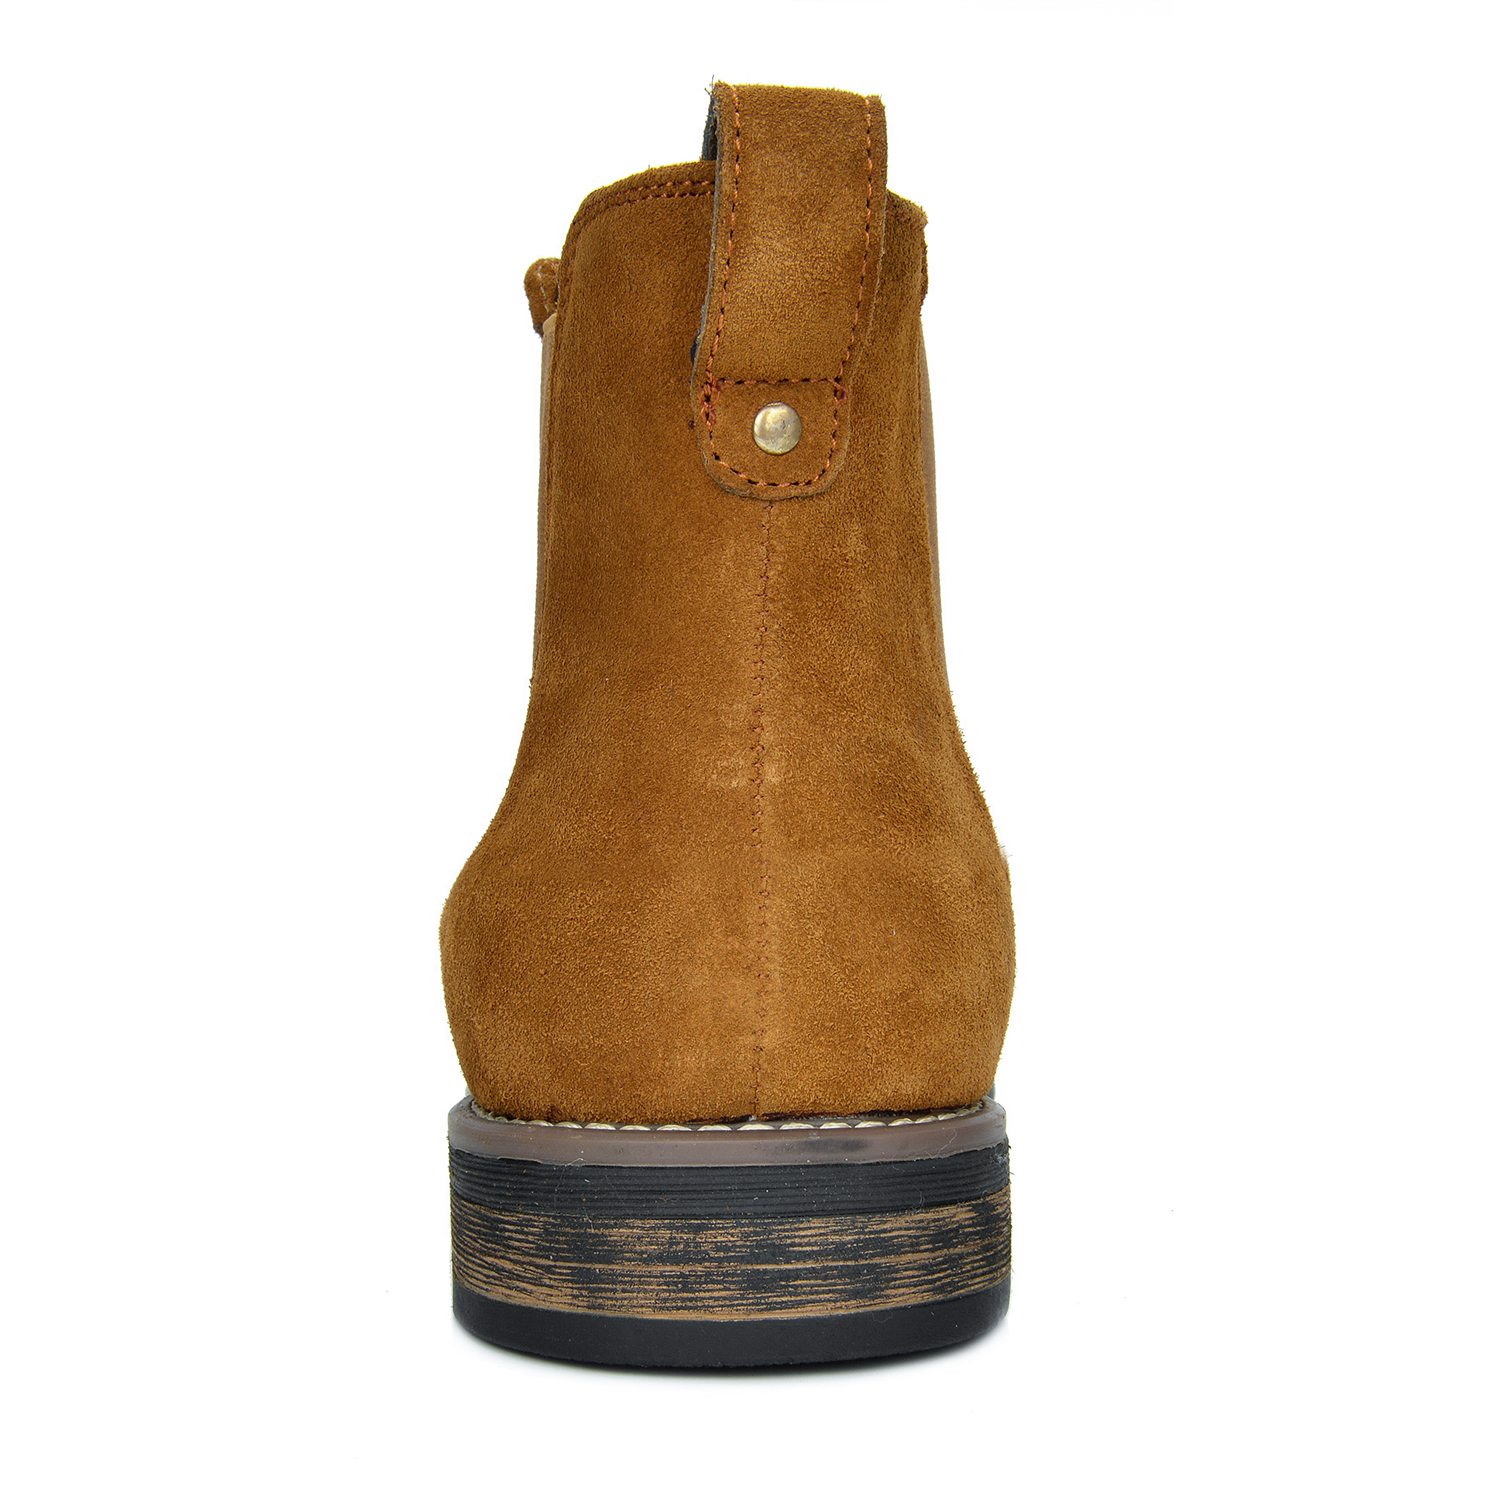 BRUNO-MARC-Men-URBAN-Suede-Leather-Chelsea-Chukka-Dress-Ankle-Boots-Casual-Shoes thumbnail 25